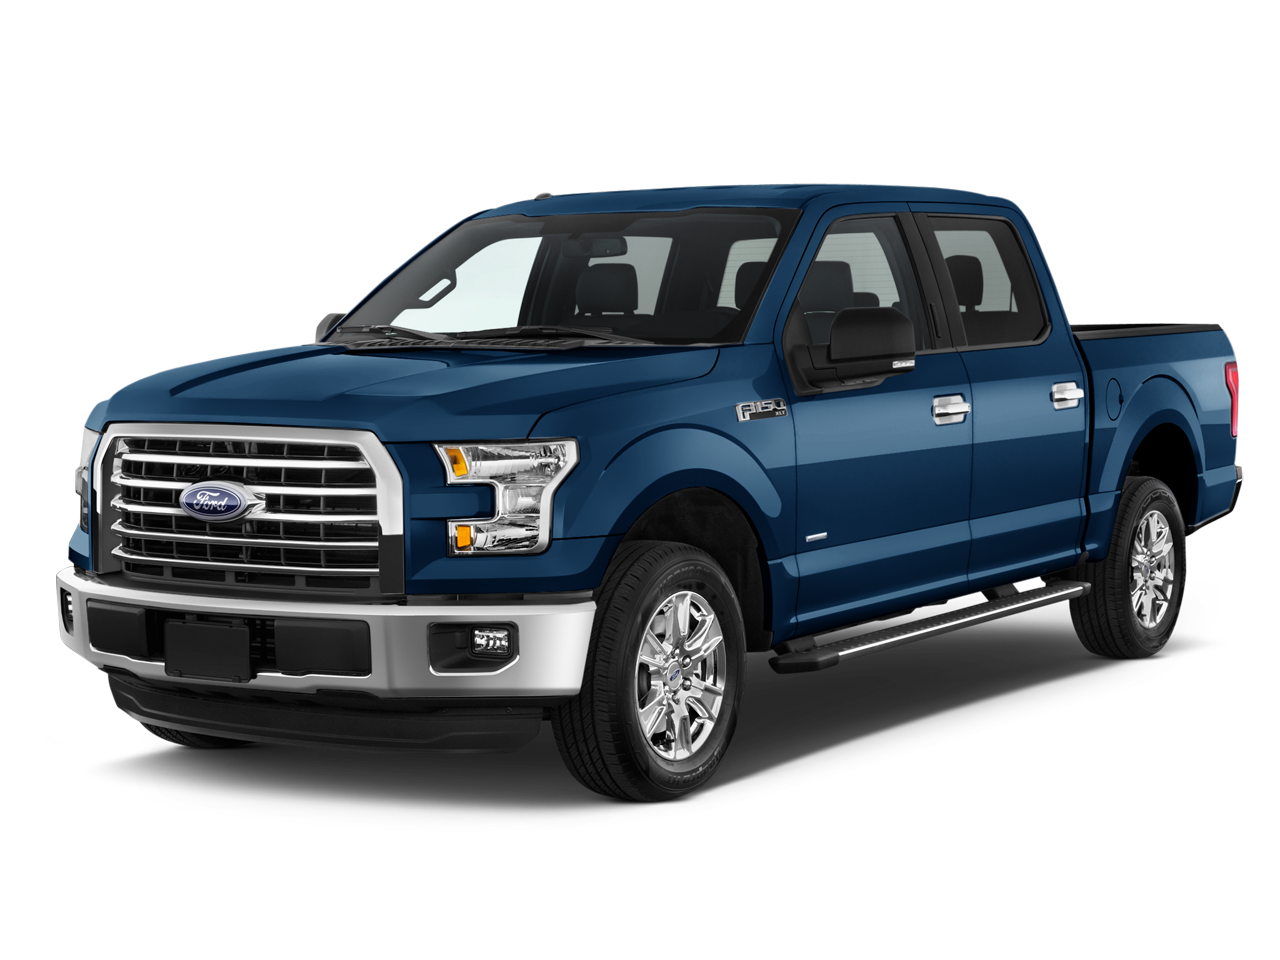 new 2017 ford f 150 xlt near tulsa ok bob hurley ford. Black Bedroom Furniture Sets. Home Design Ideas